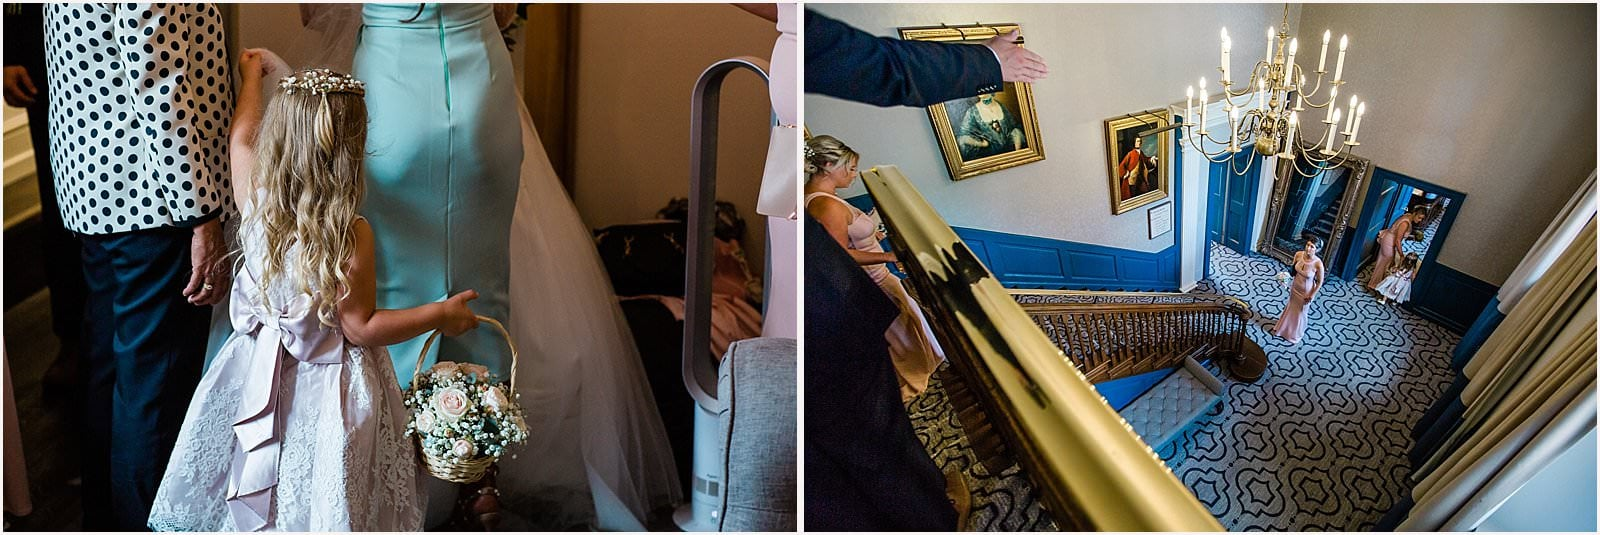 Wotton House Wedding - Justine + Rob's stunning wedding 15